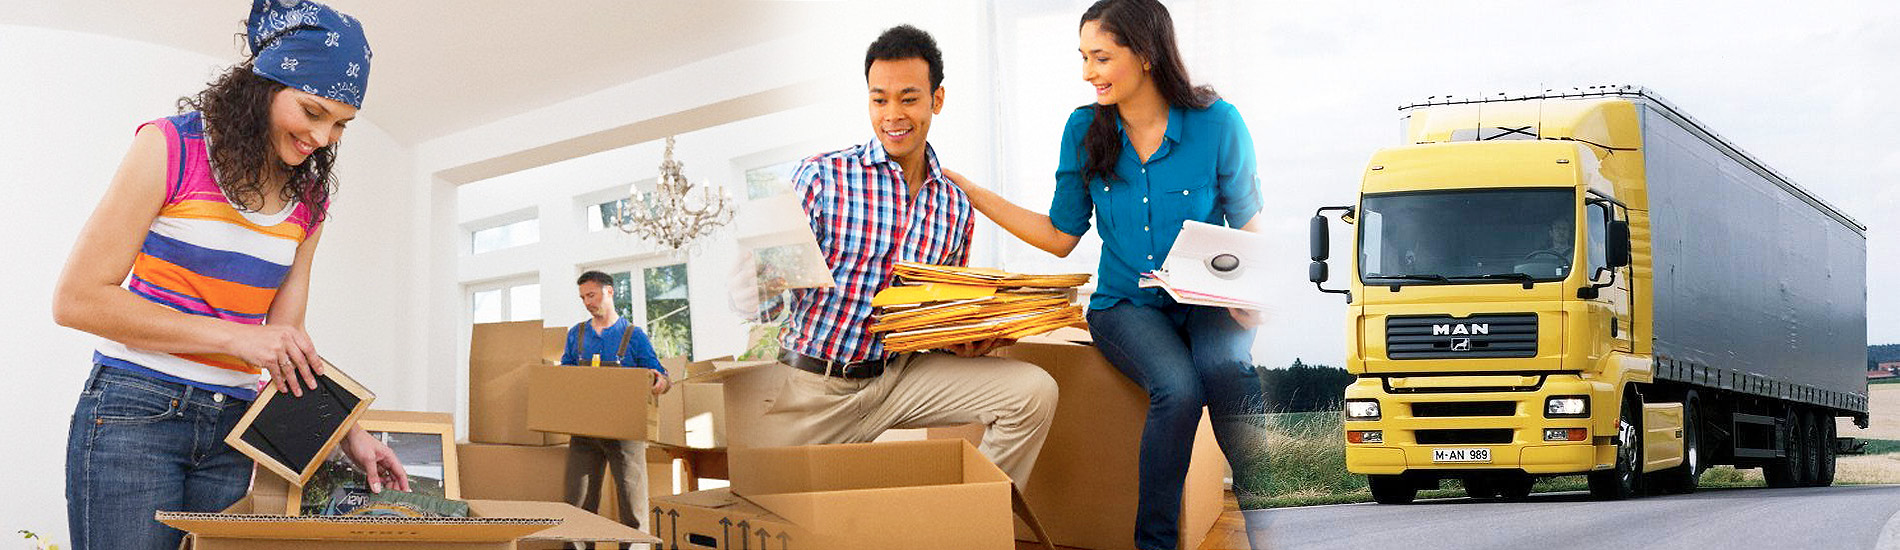 Relocating? The Top Movers and Packers Are Your Disposal!